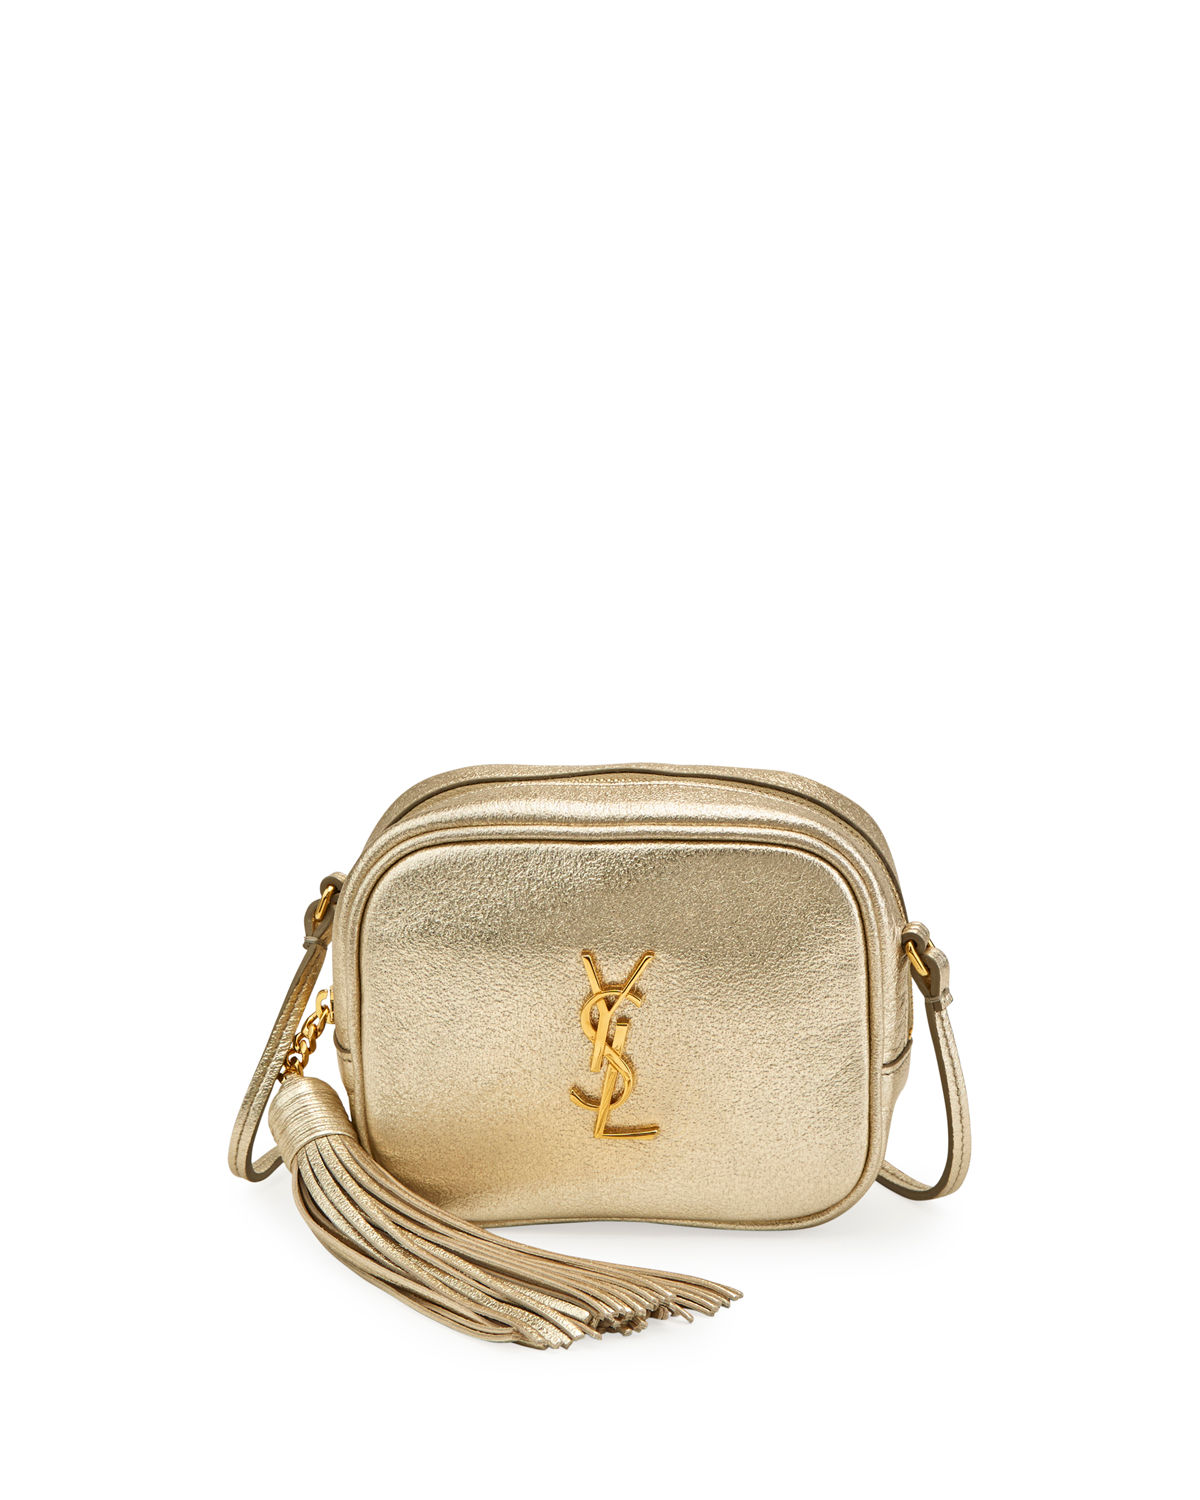 Monogram Blogger Crossbody Bag